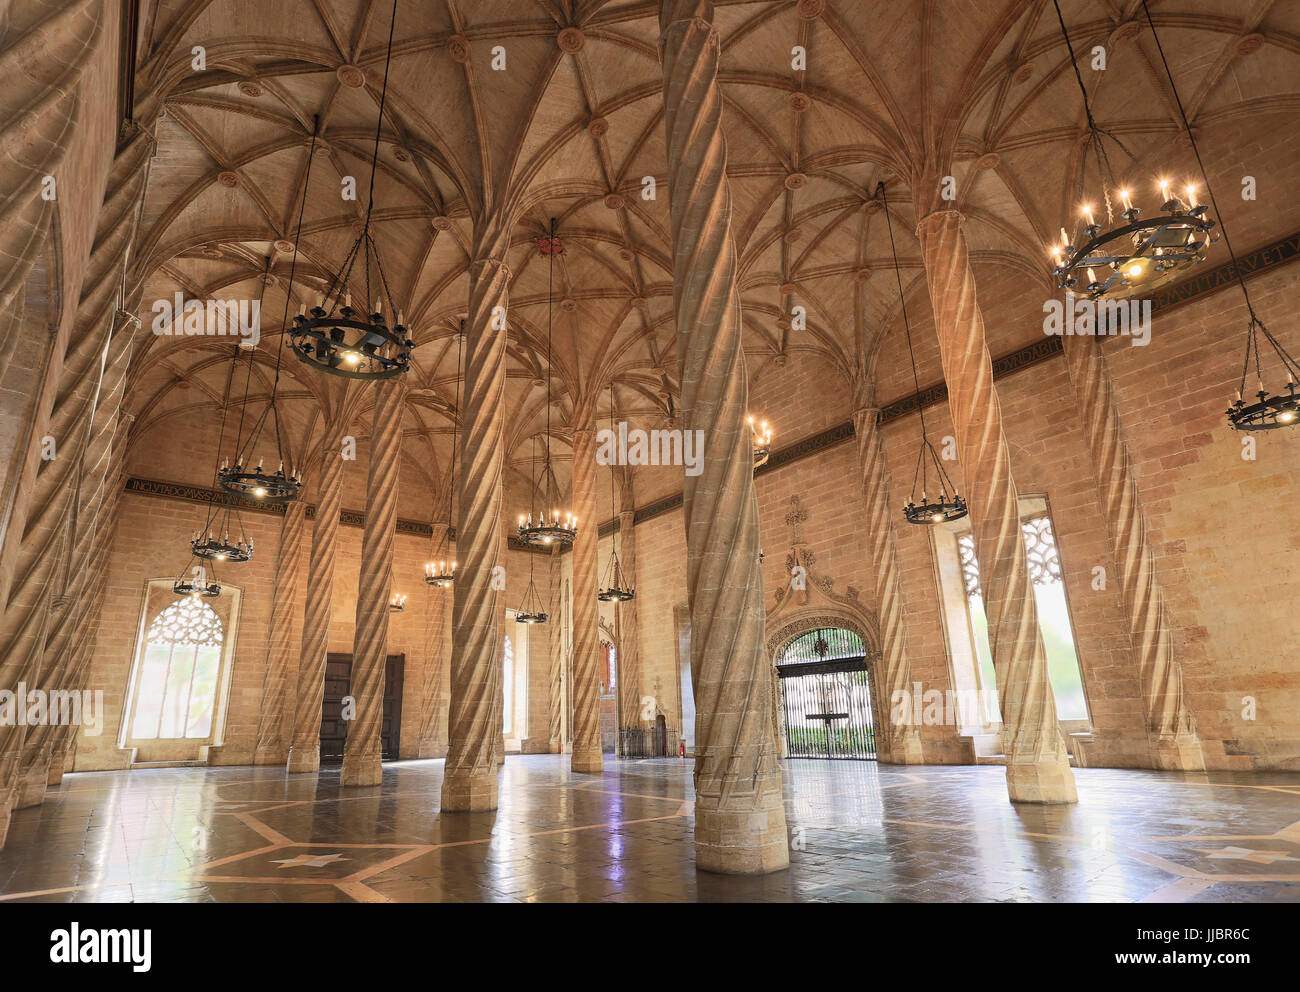 VALENCIA, SPAIN - JULY 24, 2017: The Llotja de la Seda is a late Valencian Gothic style civil building and is a Stock Photo